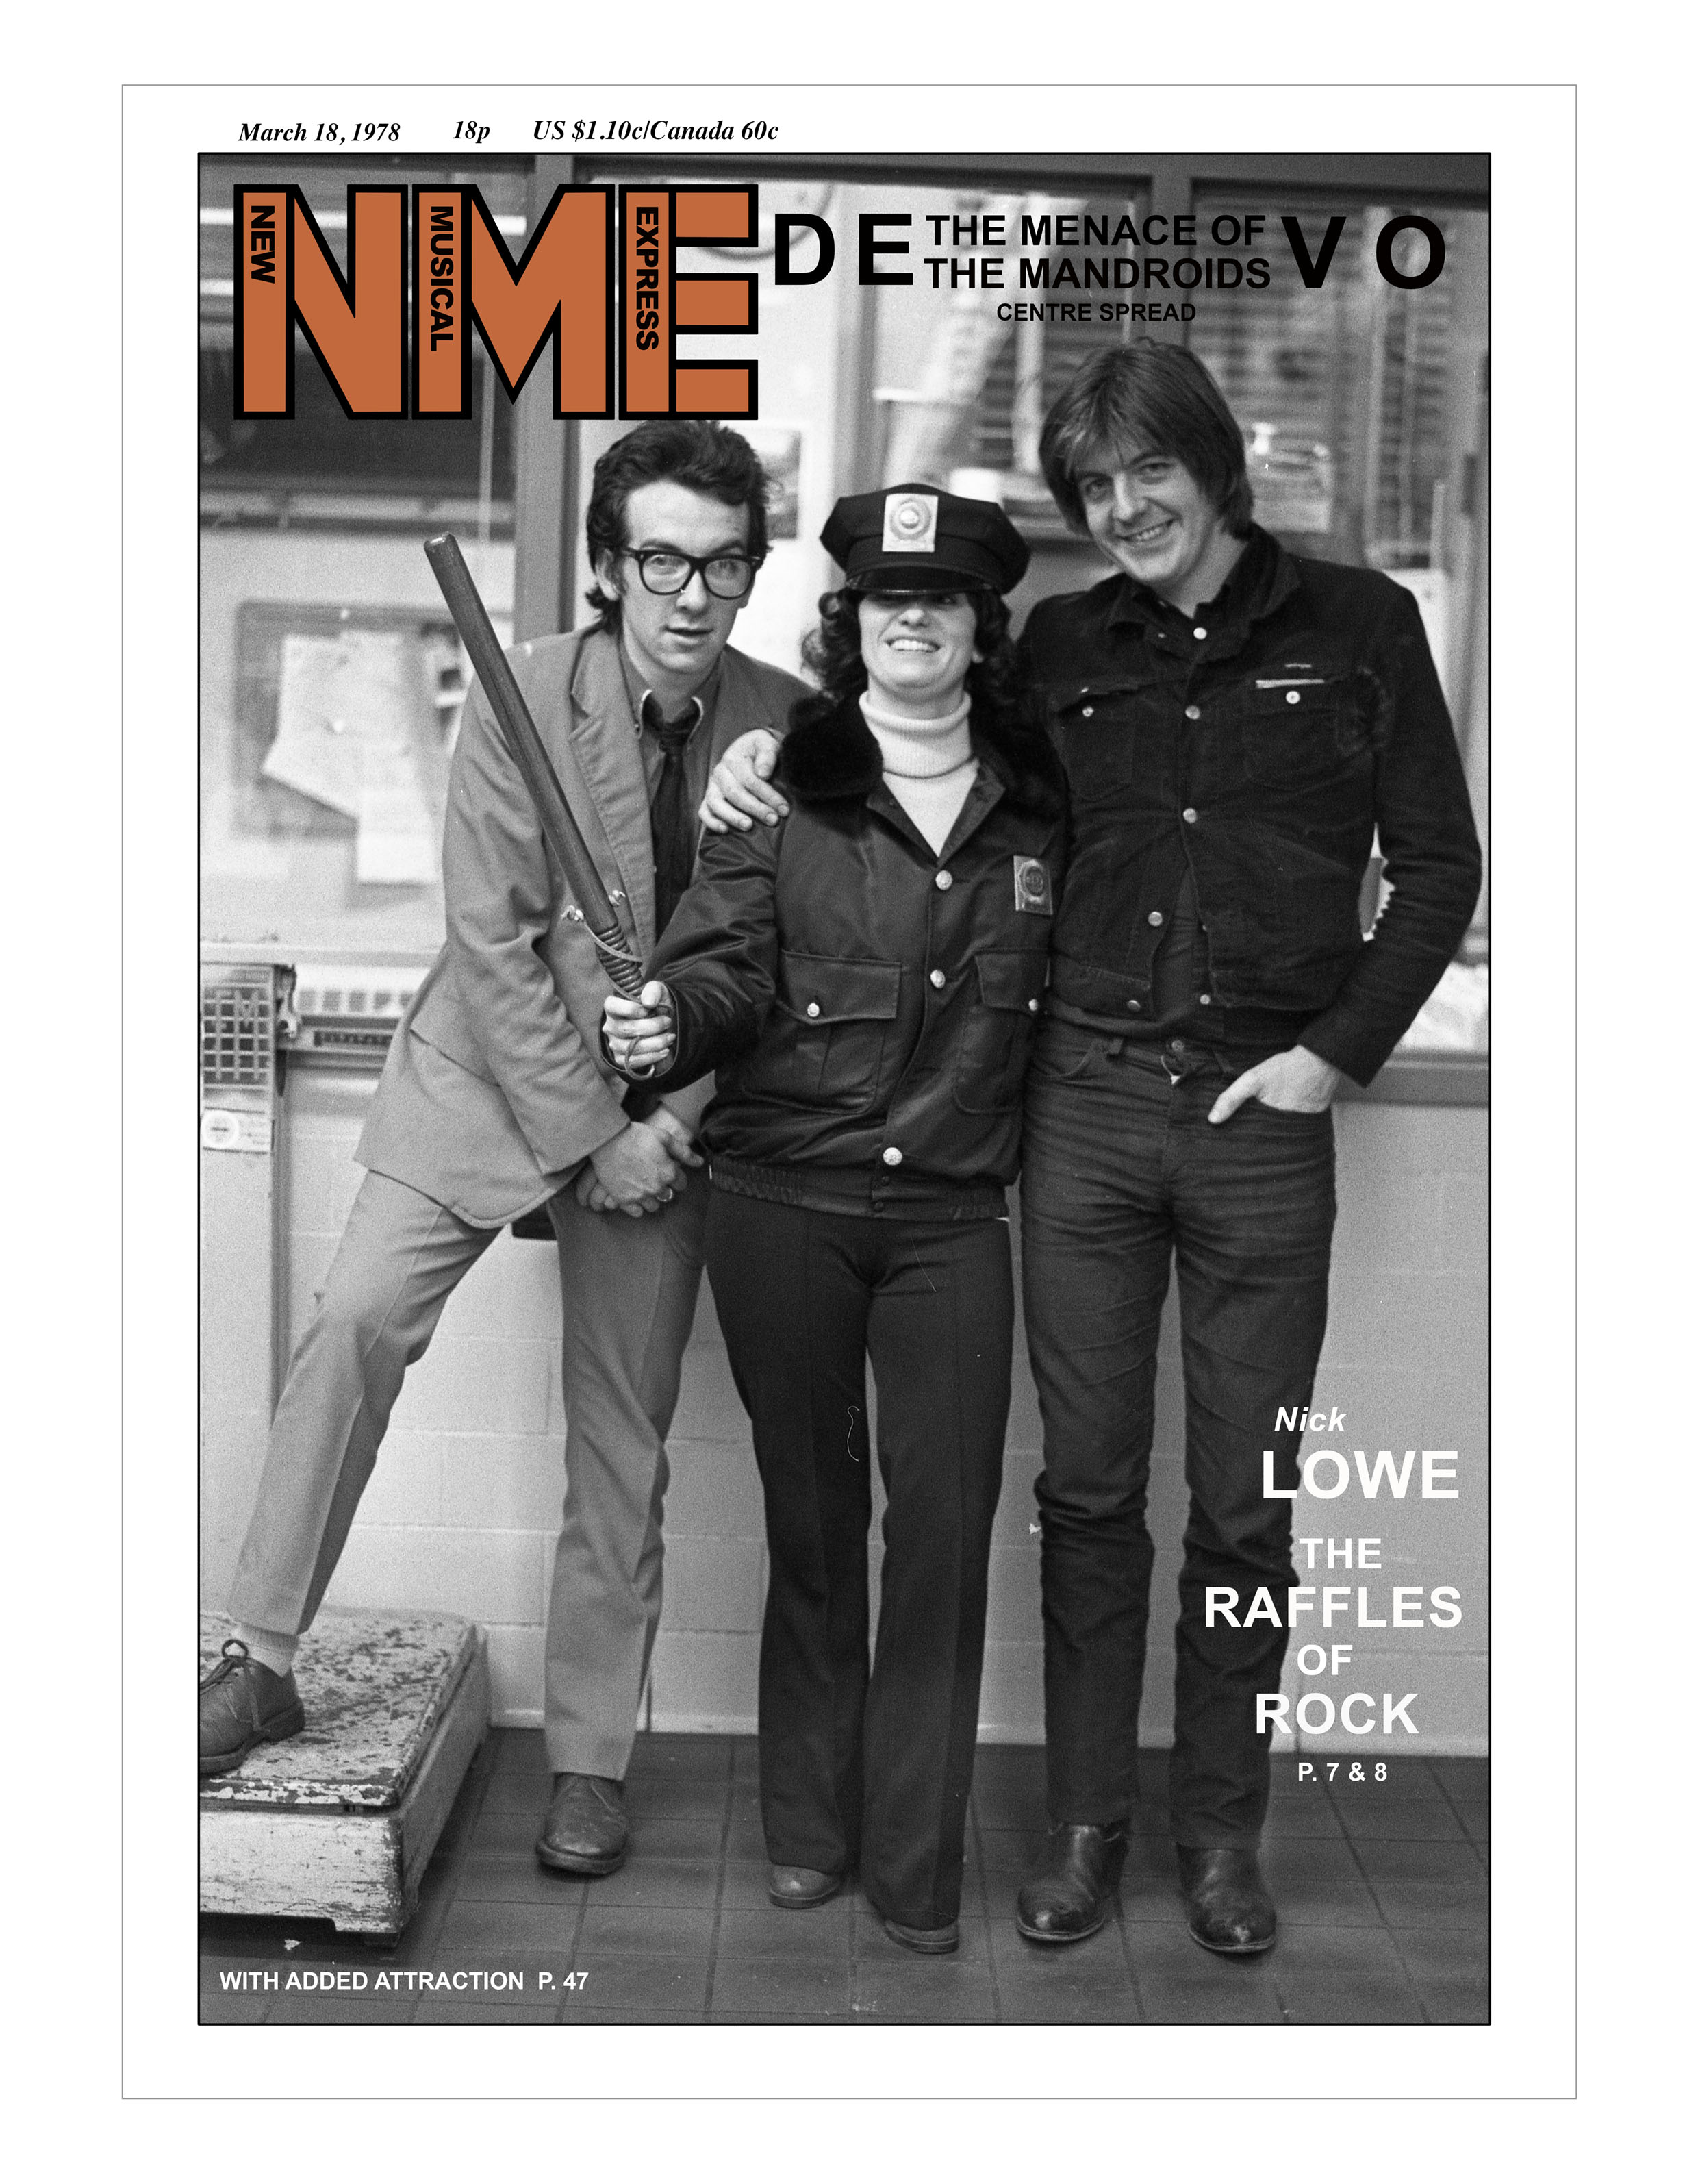 ec nick NME cover catalog.jpg